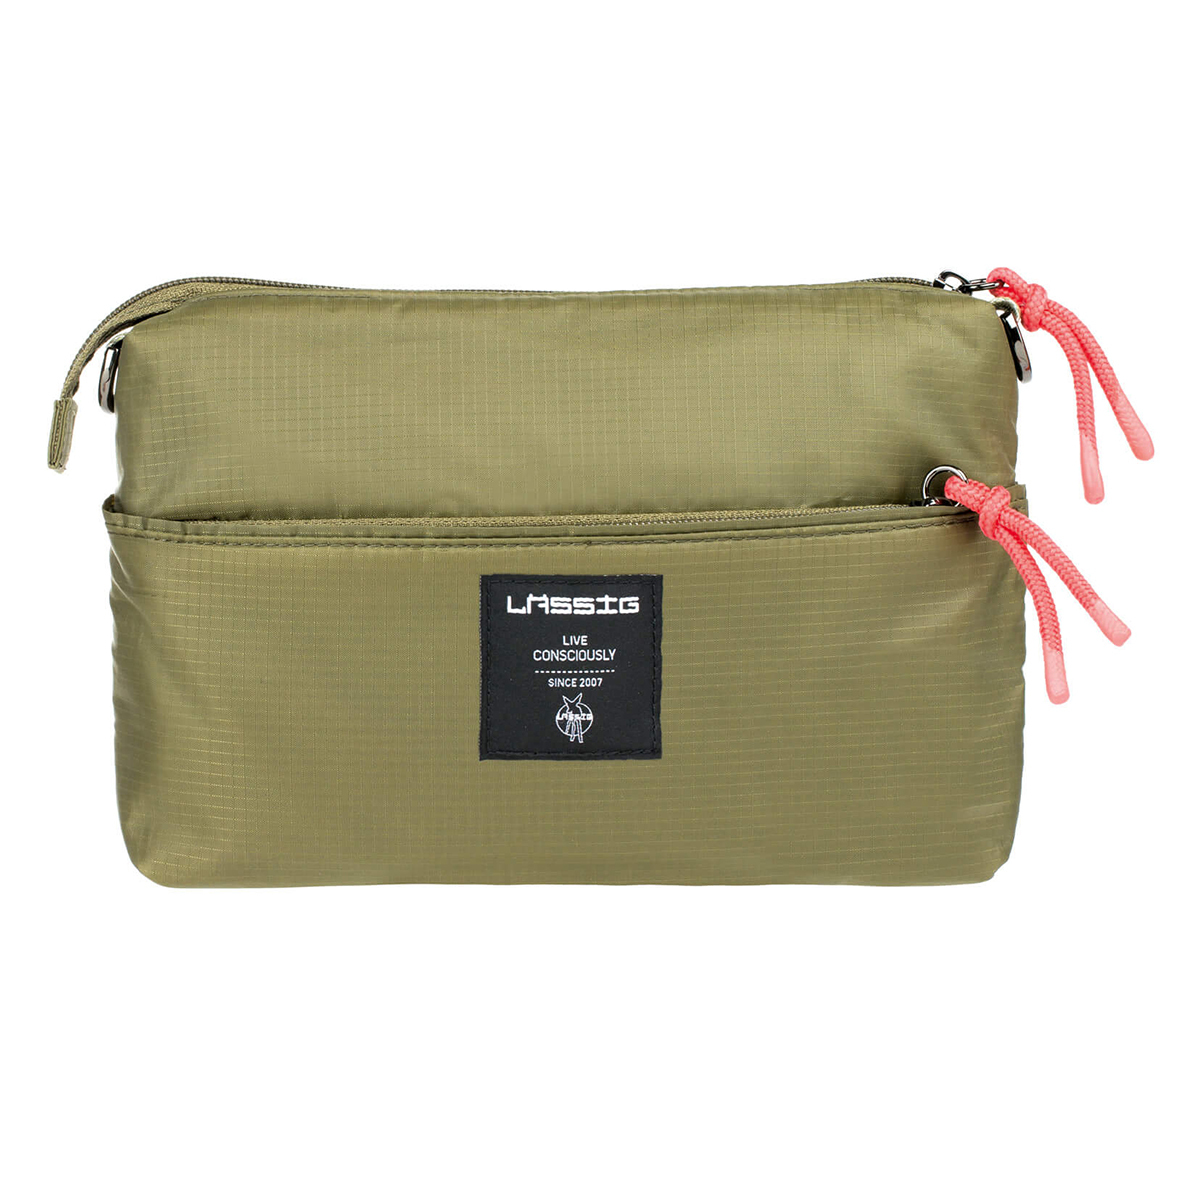 Sac à langer Pochette à Langer Pop Green Label - Olive Pochette à Langer Pop Green Label - Olive